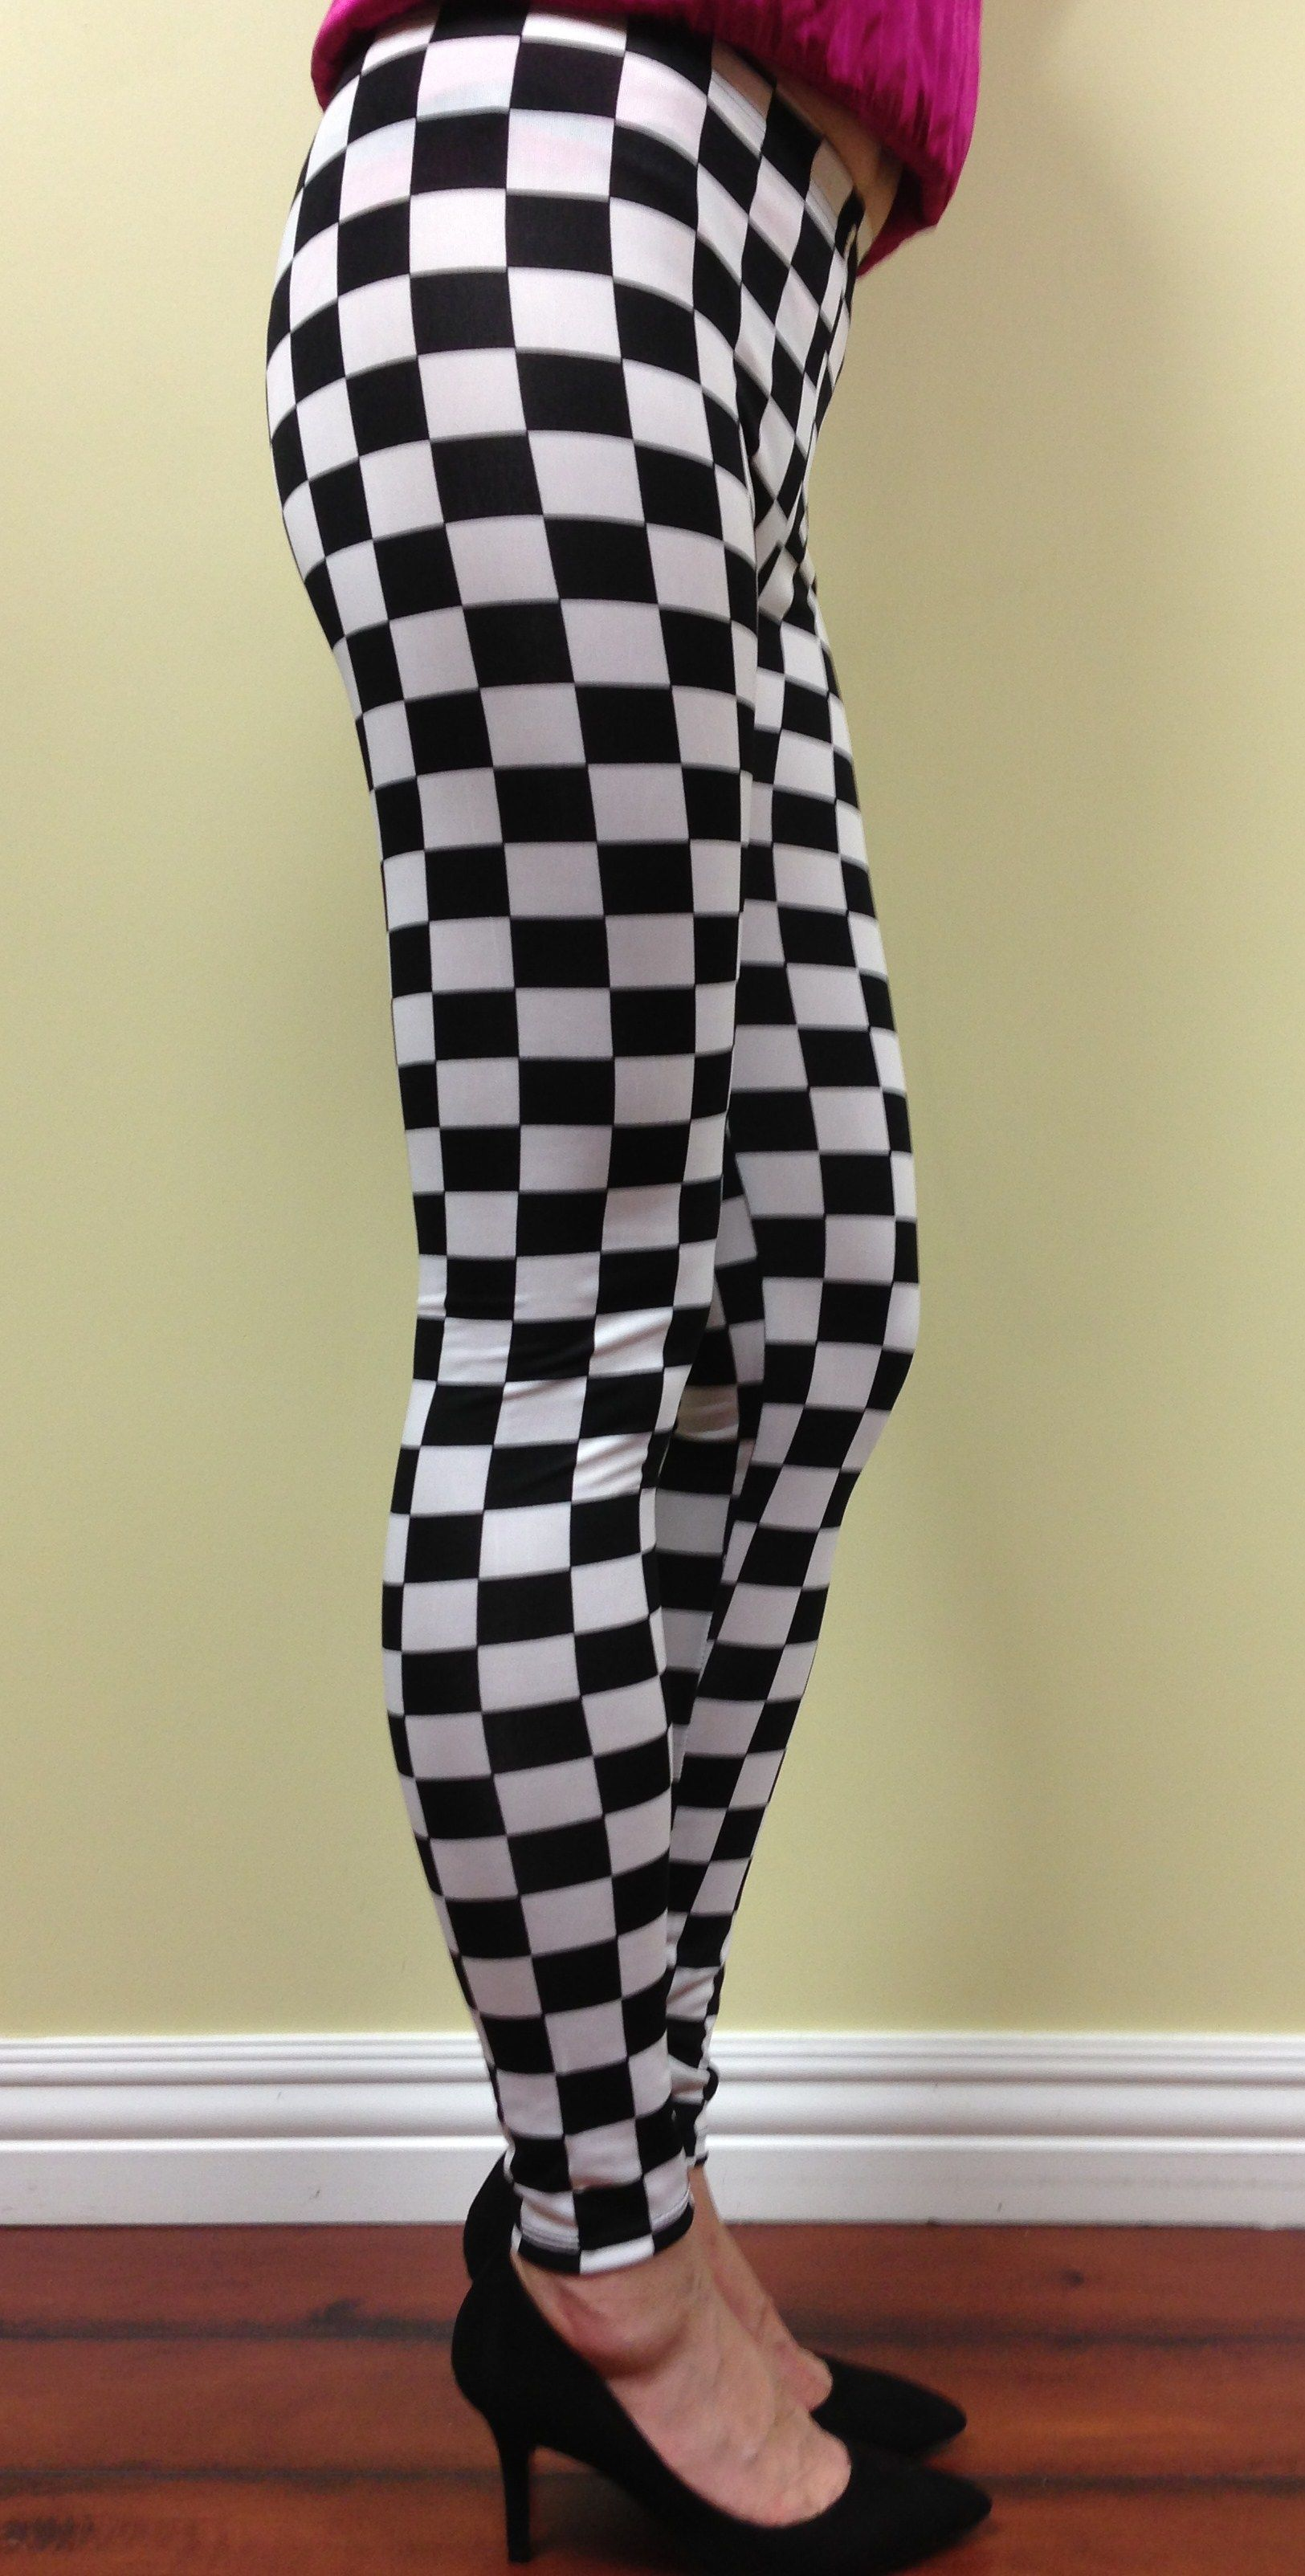 9c3447a6ebee2 High waist black n white checkered leggings. Knit. One size | All ...